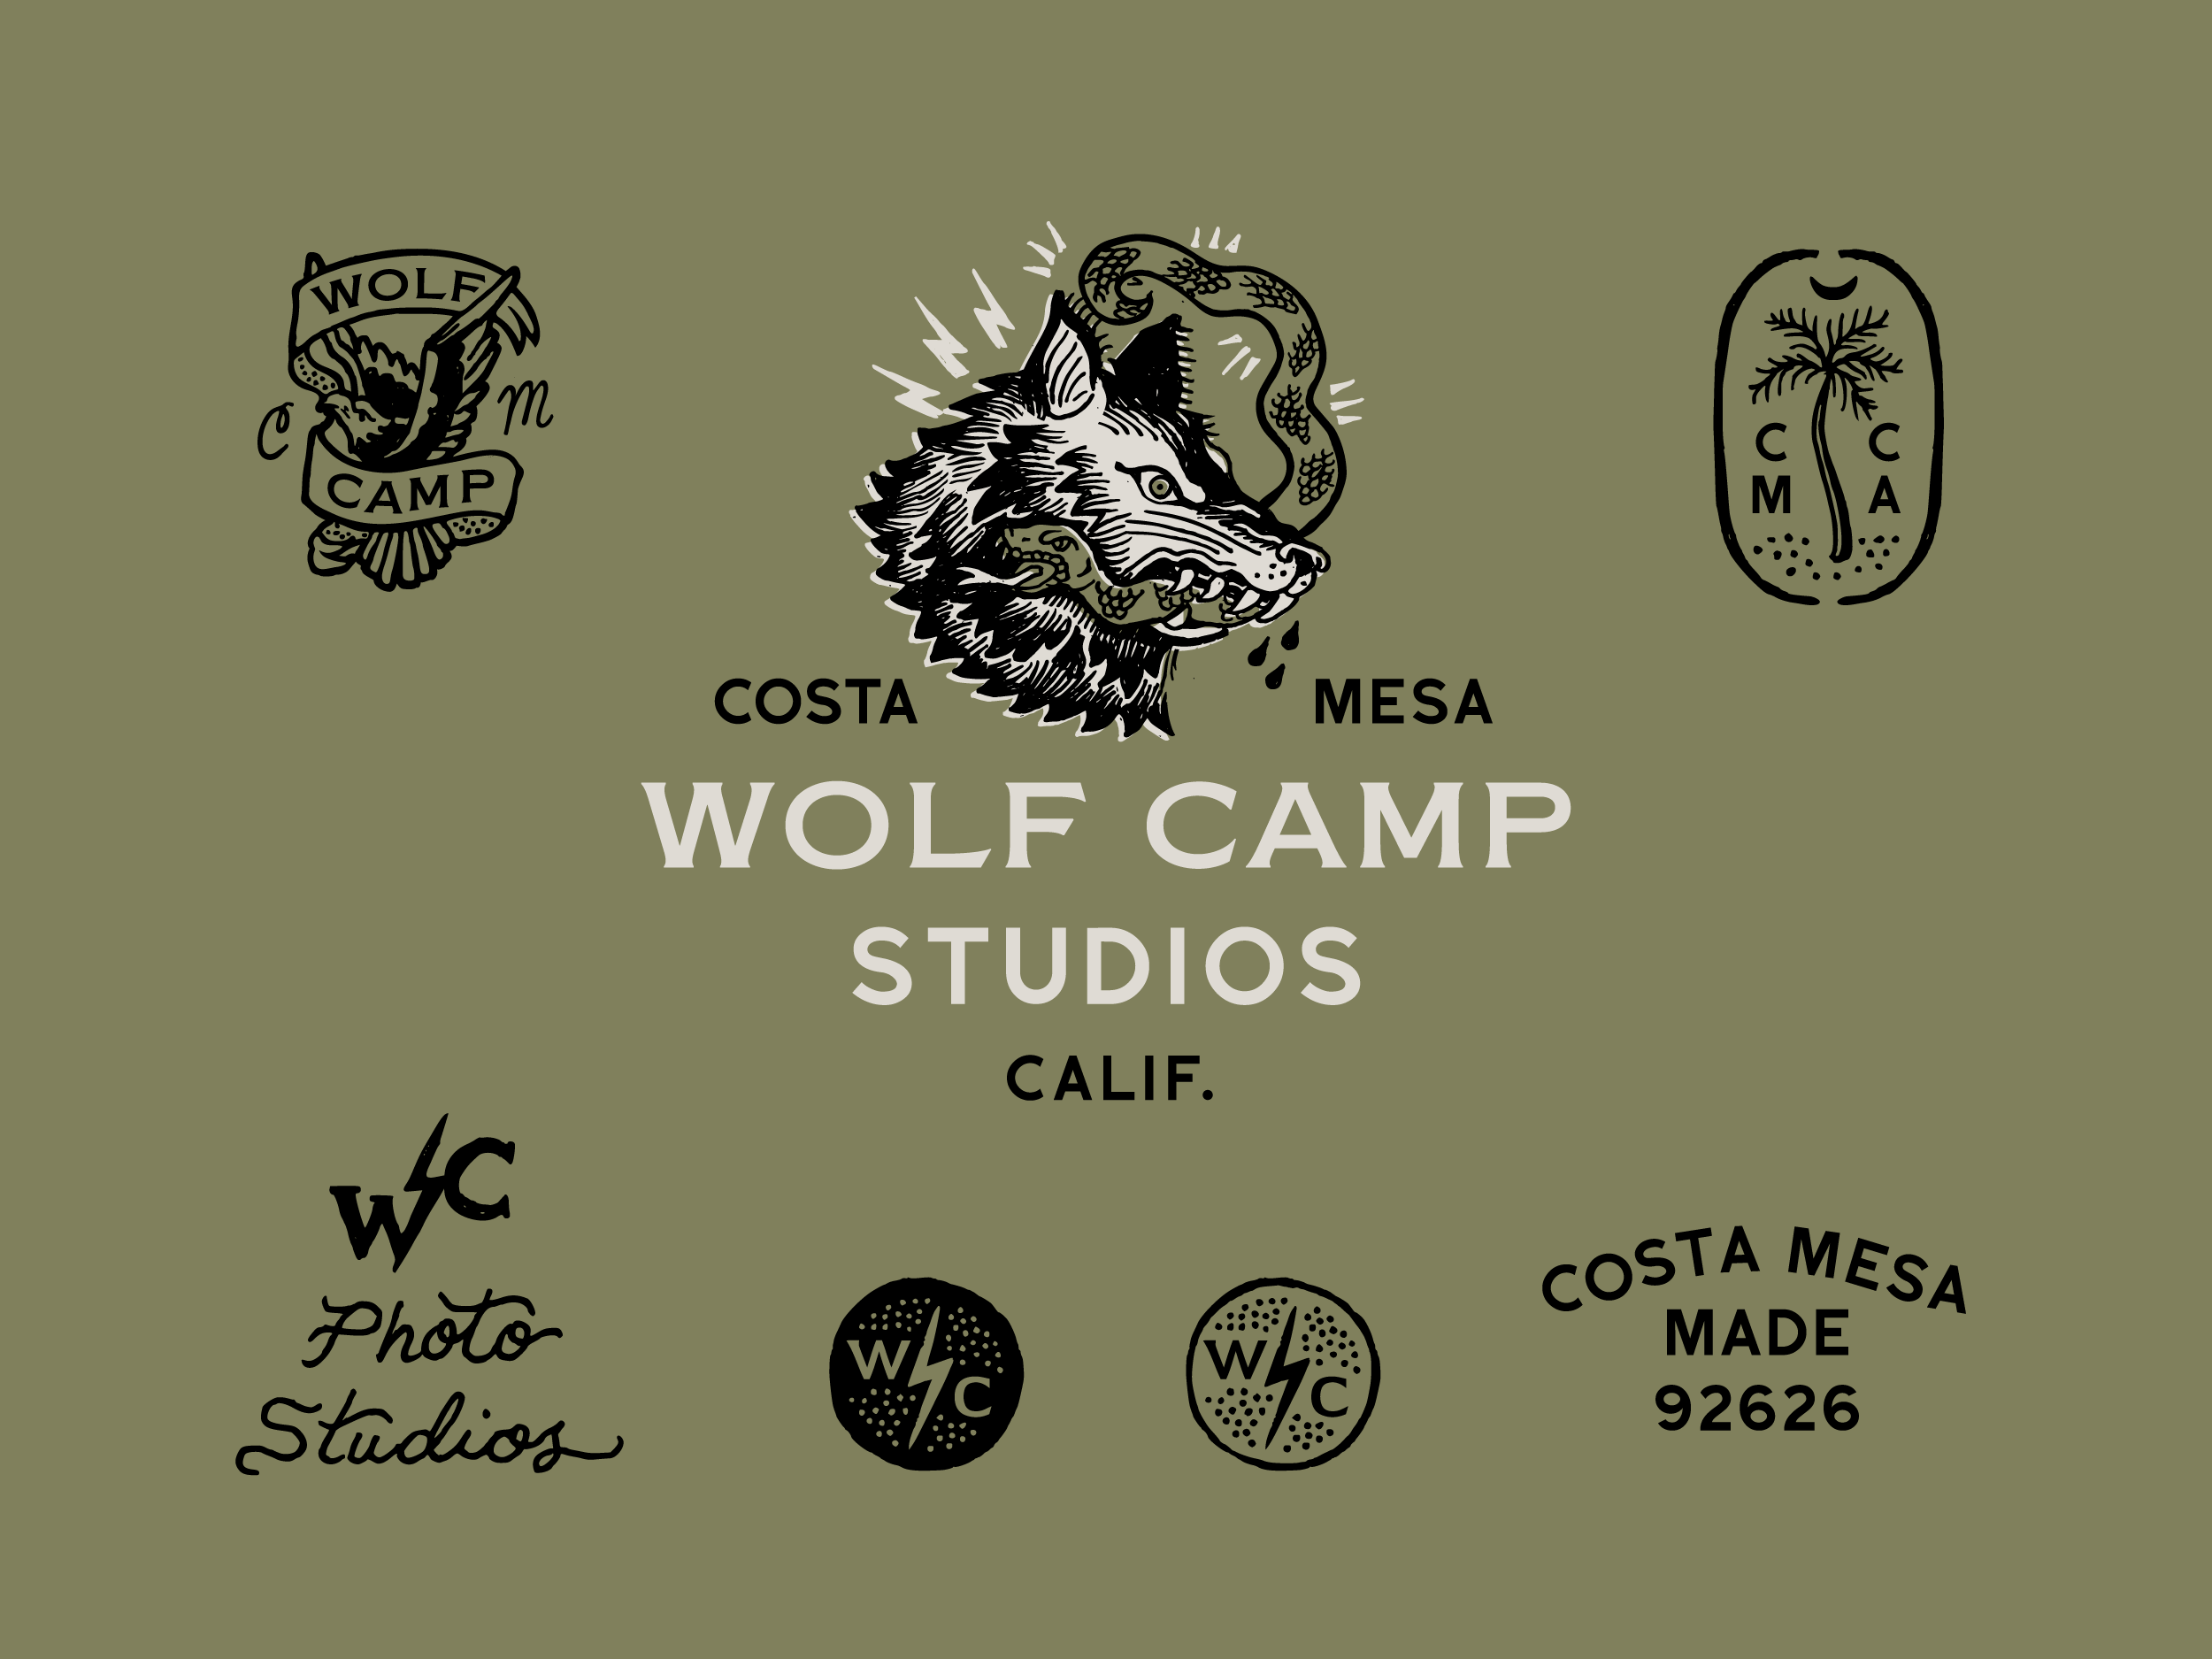 Wolf Camp logos in color